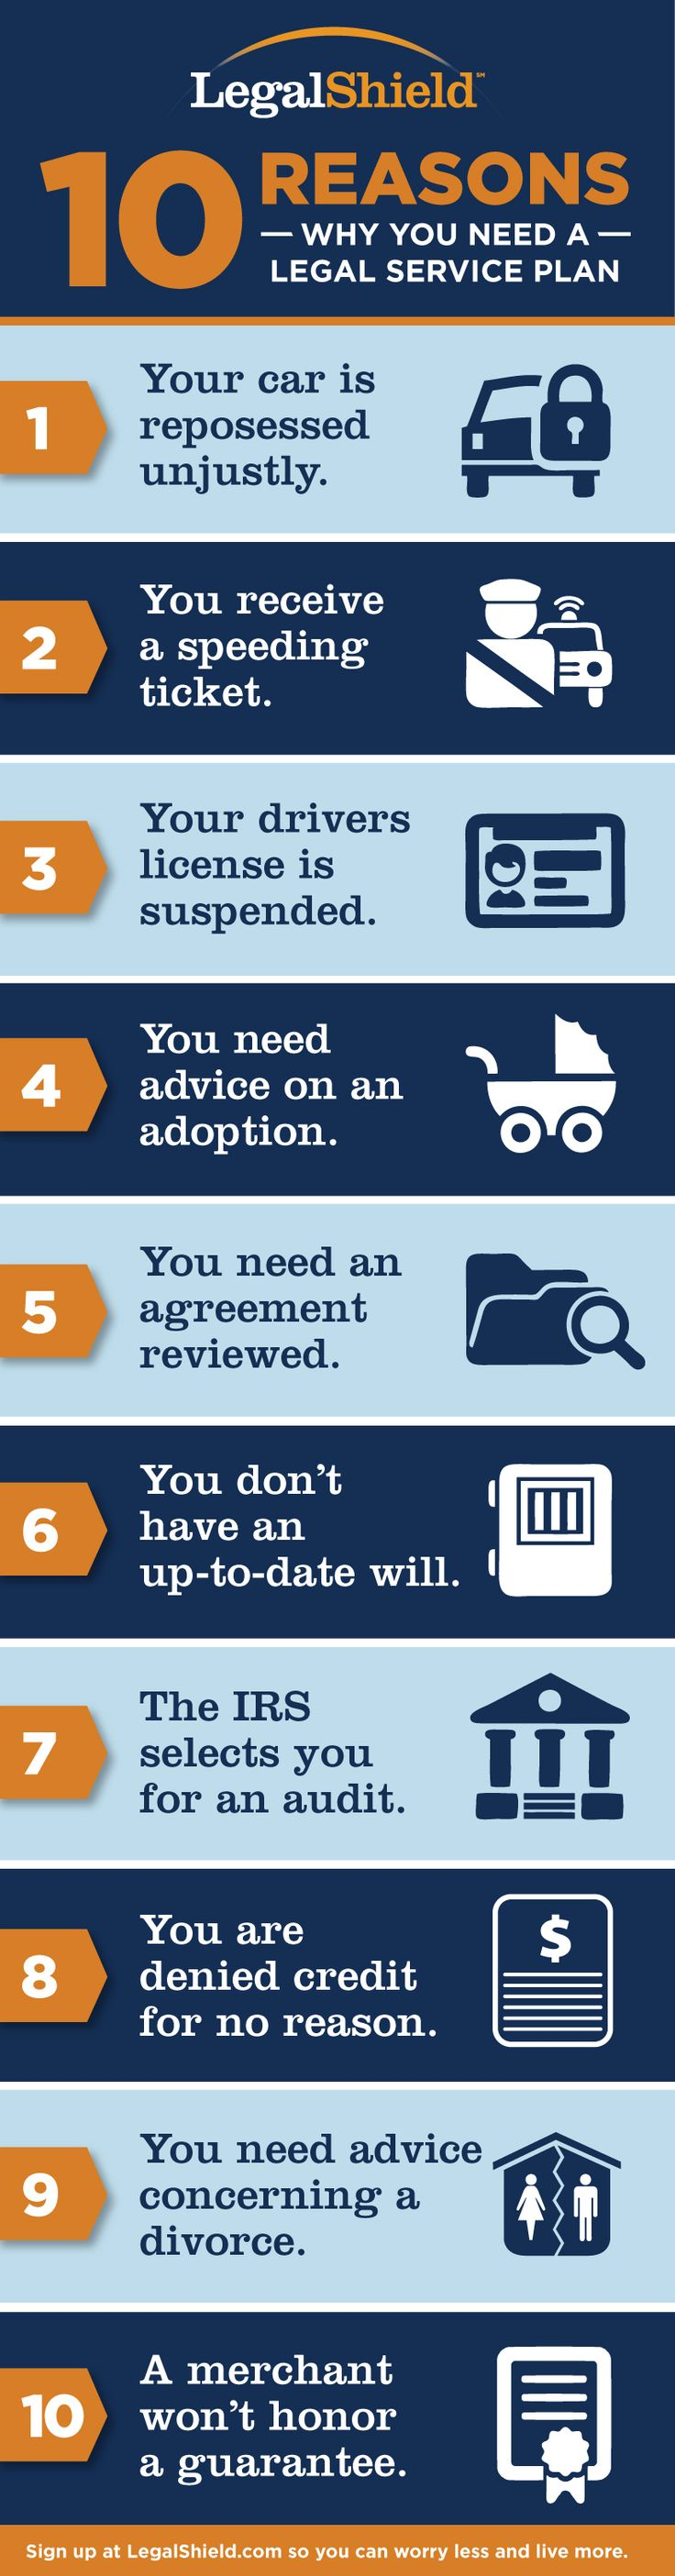 10 Reasons Why Every Family Needs a Legal Plan. Visit my site for details! www.danisha83.legalshield.com